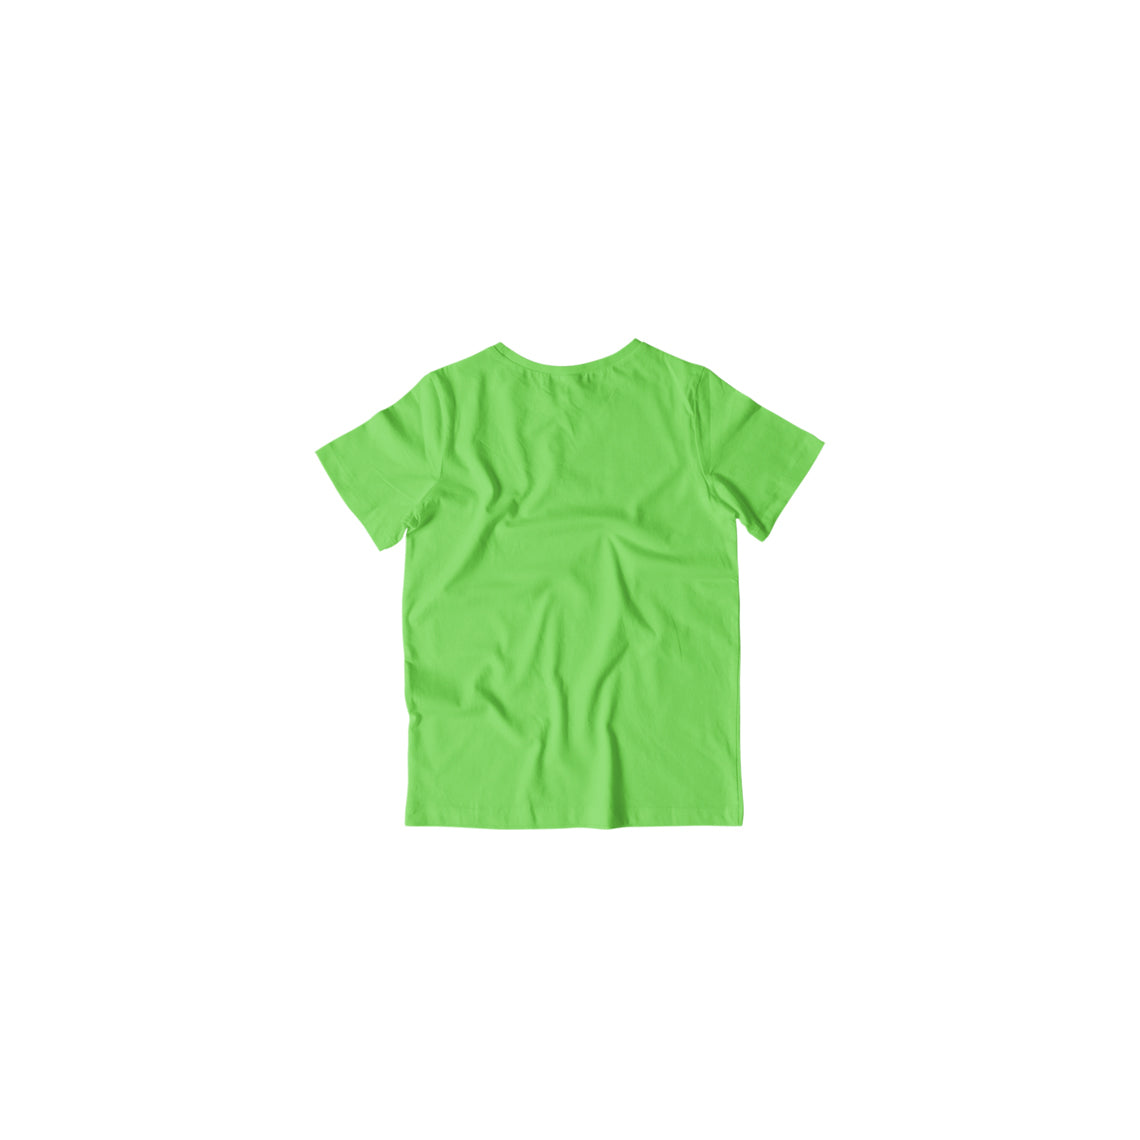 Toddler's Basics - Liril Green Half Sleeves Round Neck T-shirt